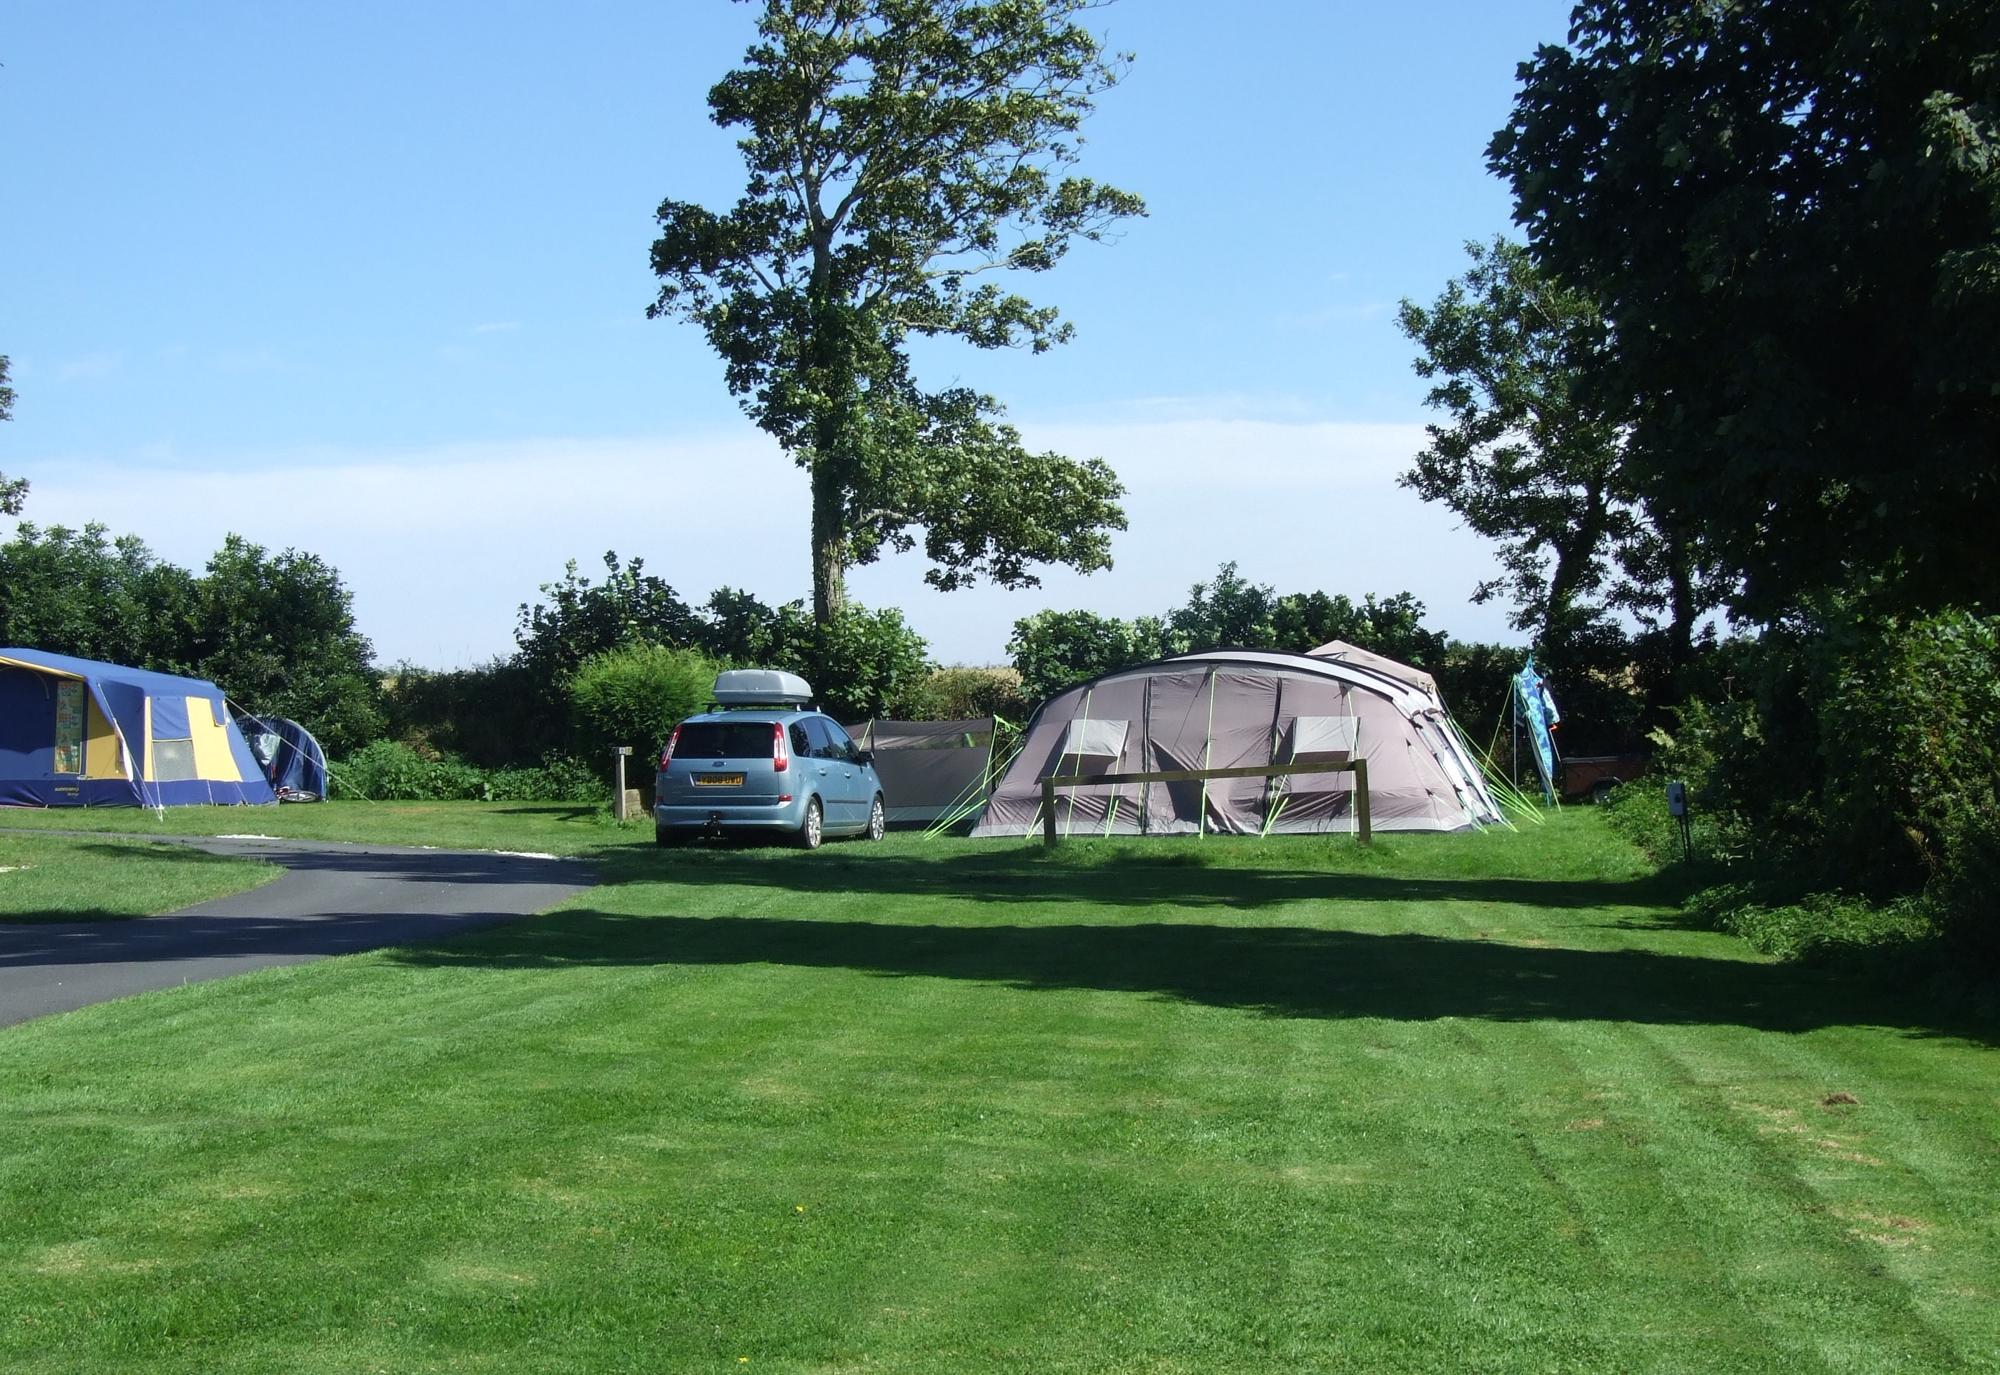 Truro Camping – Campsites near Truro, Cornwall